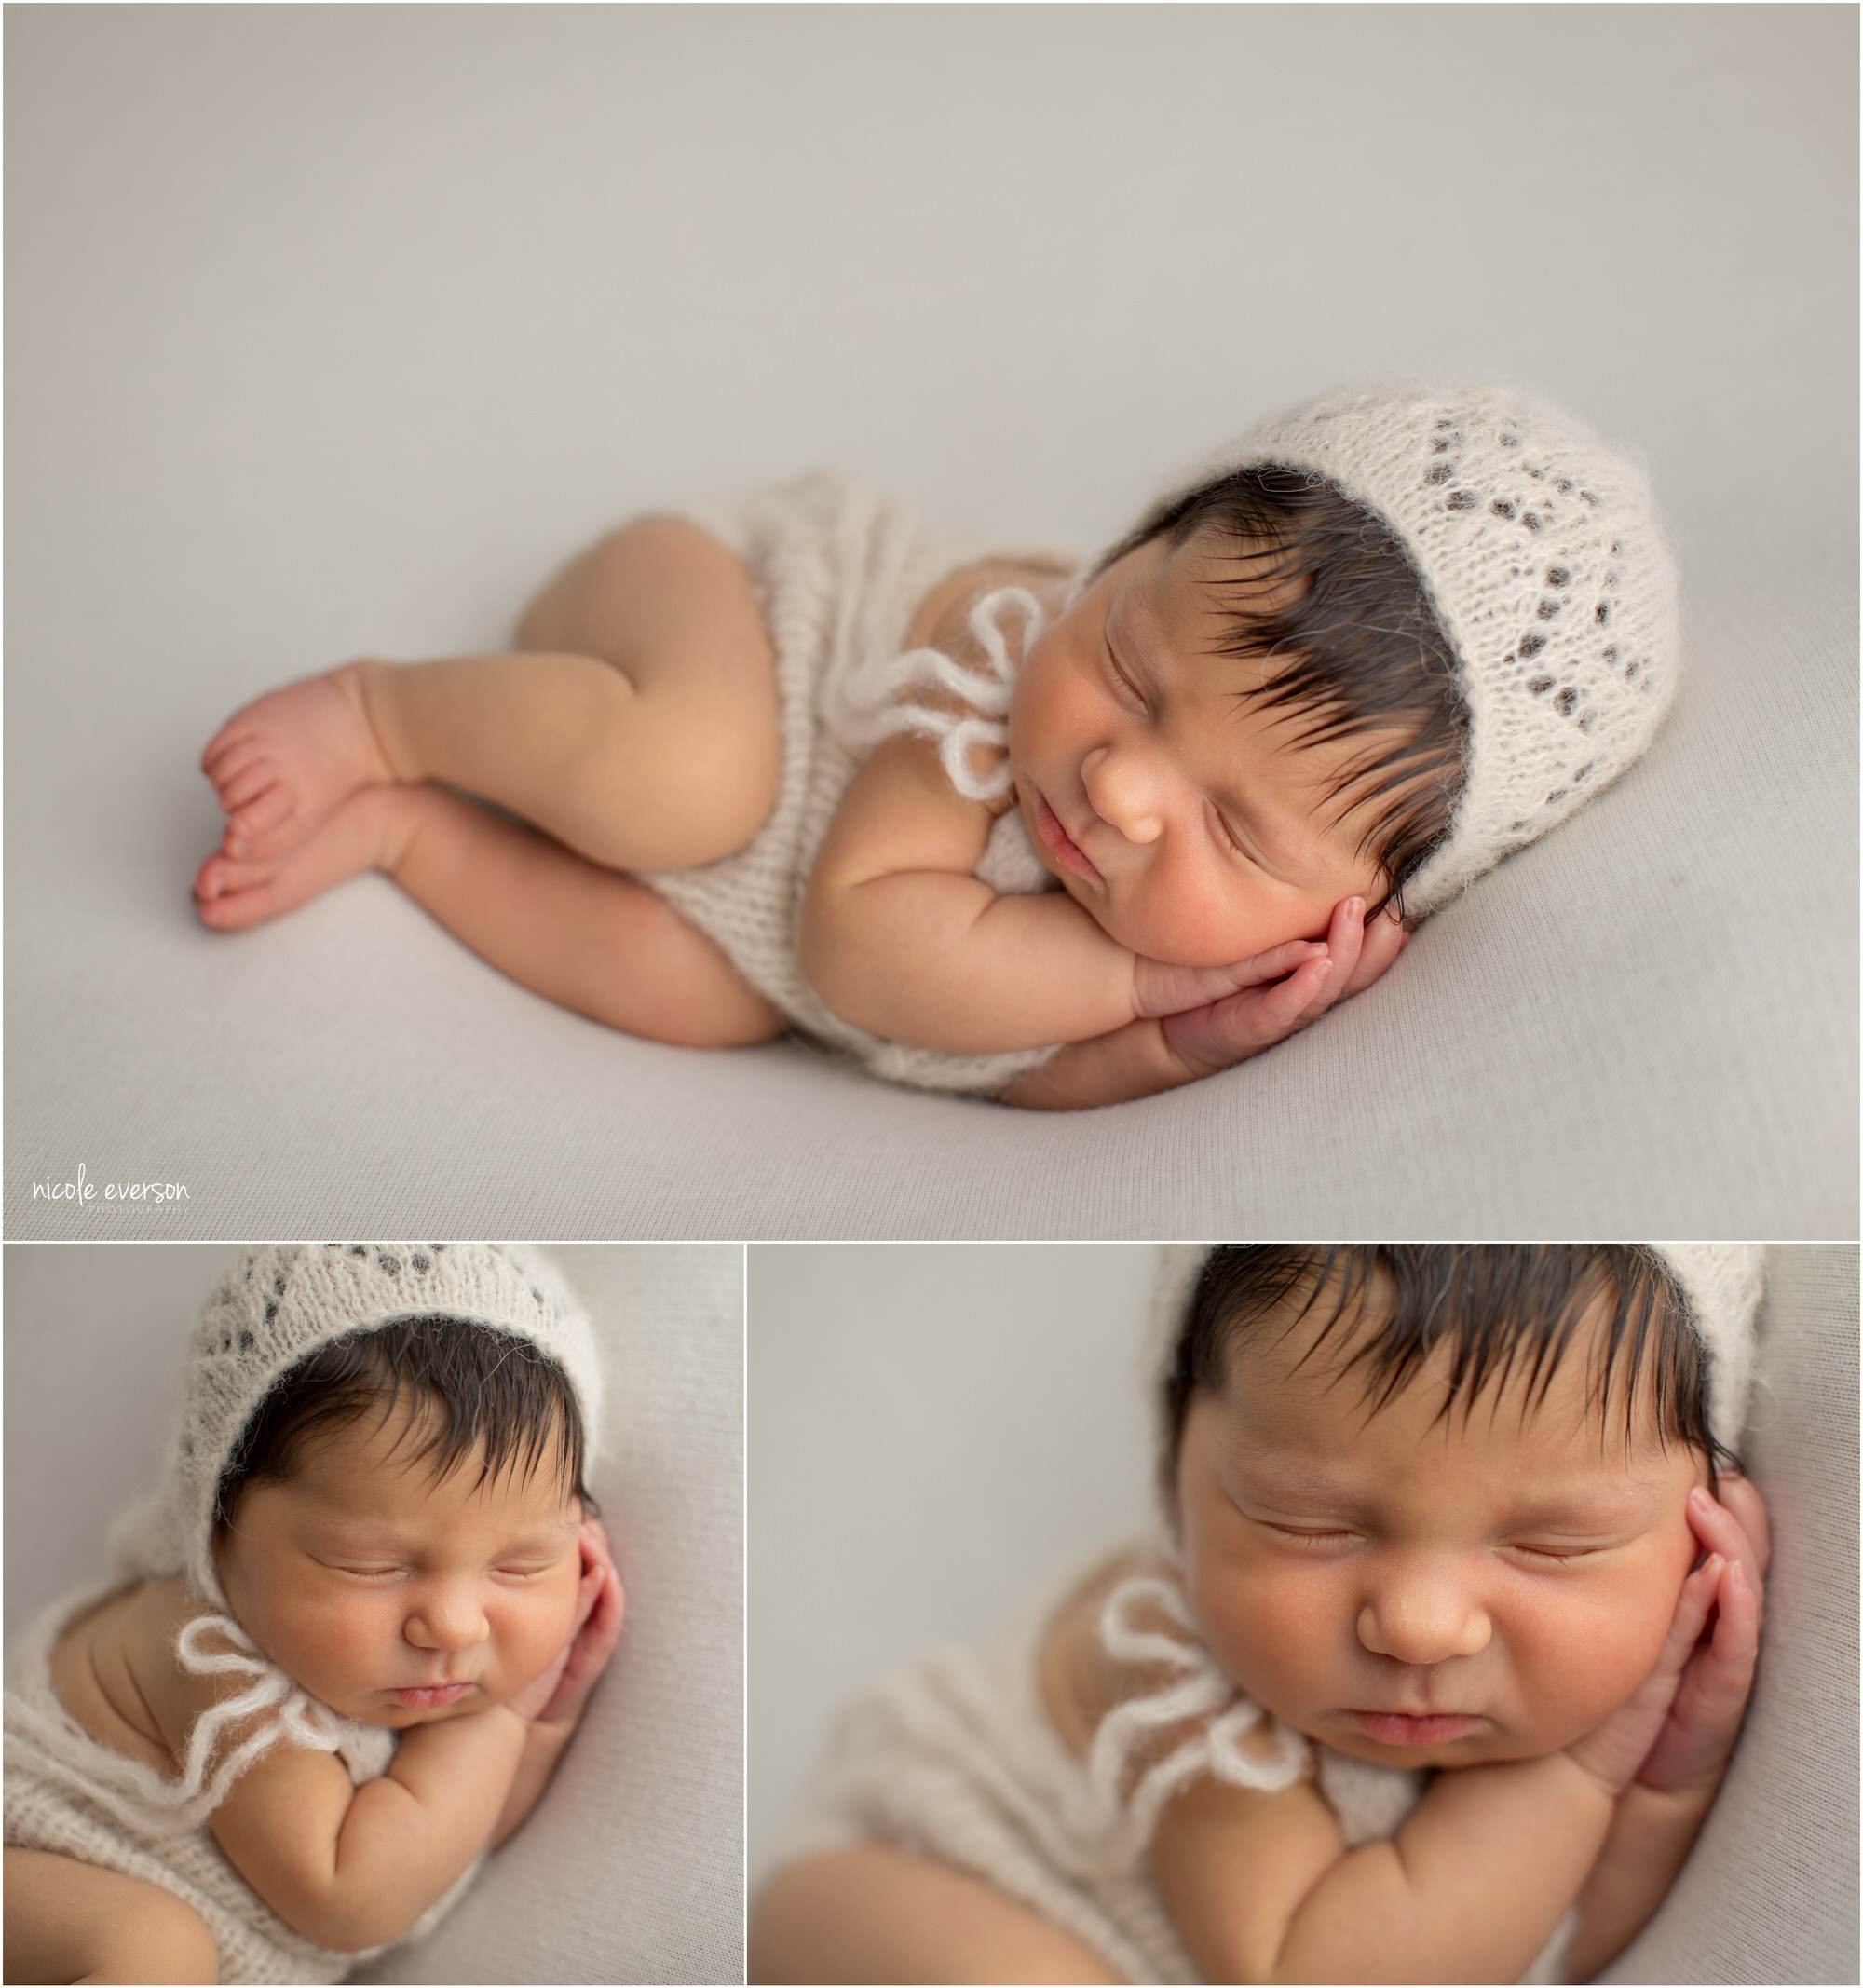 newborn baby photograph by Nicole Everson Photography